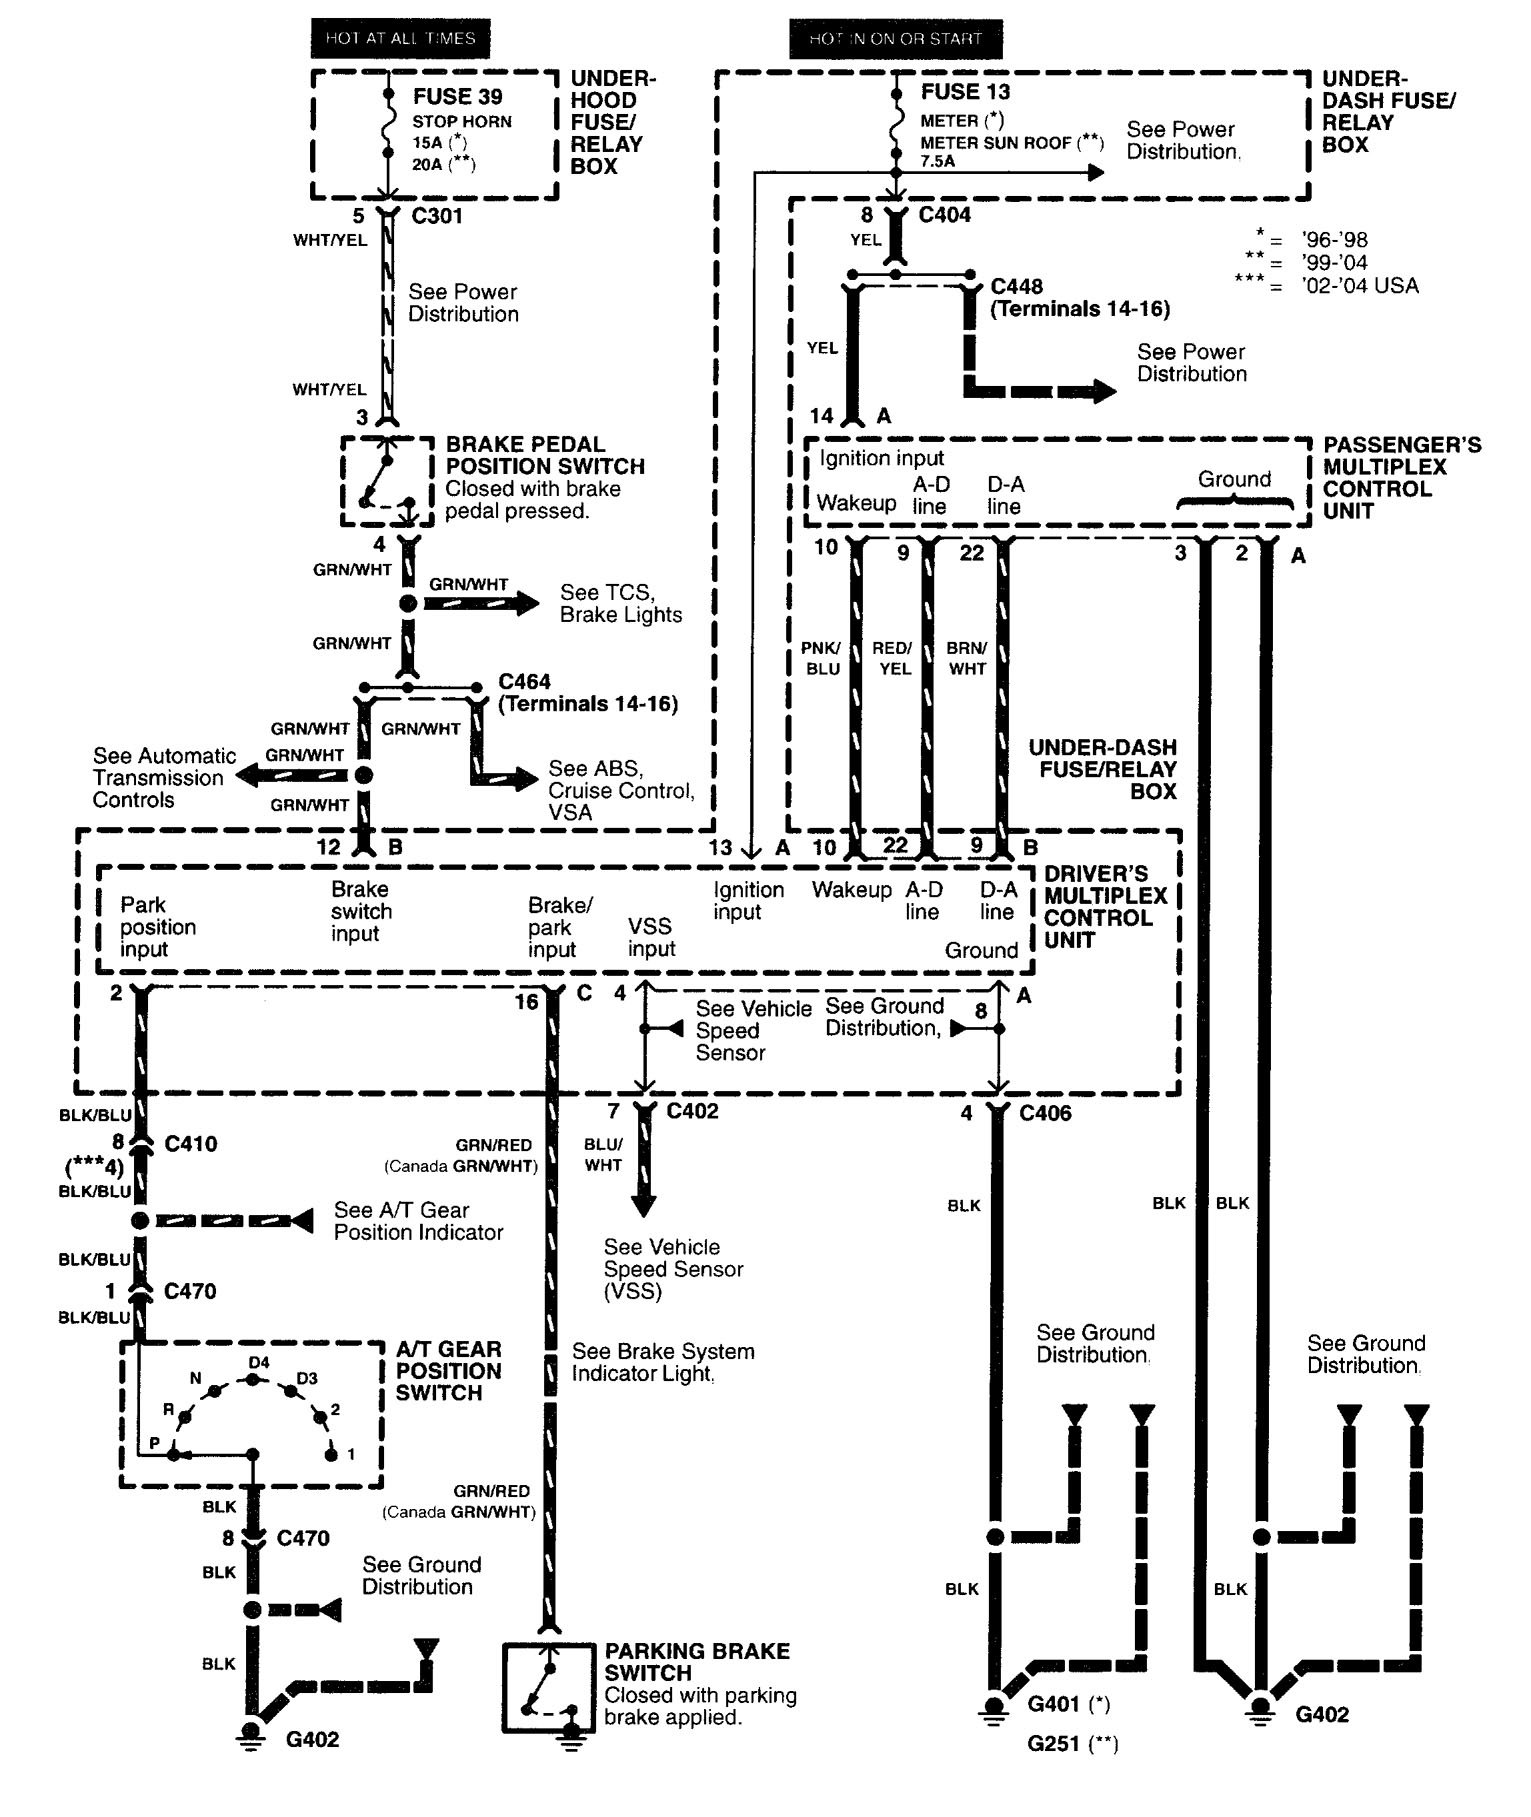 Lx665 Wiring Diagram | Wiring Diagrams on new holland c185 wiring diagram, new holland l250 wiring diagram, new holland l220 wiring diagram, new holland lx565 wiring diagram, new holland l553 wiring diagram, new holland l170 wiring diagram, new holland c190 wiring diagram, new holland ls160 wiring diagram, new holland ls180 wiring diagram, new holland l180 wiring diagram, new holland l775 wiring diagram, new holland lb115 wiring diagram, new holland l555 wiring diagram, new holland ls170 wiring diagram, new holland l785 wiring diagram, new holland l218 wiring diagram, new holland l185 wiring diagram, new holland l454 wiring diagram,